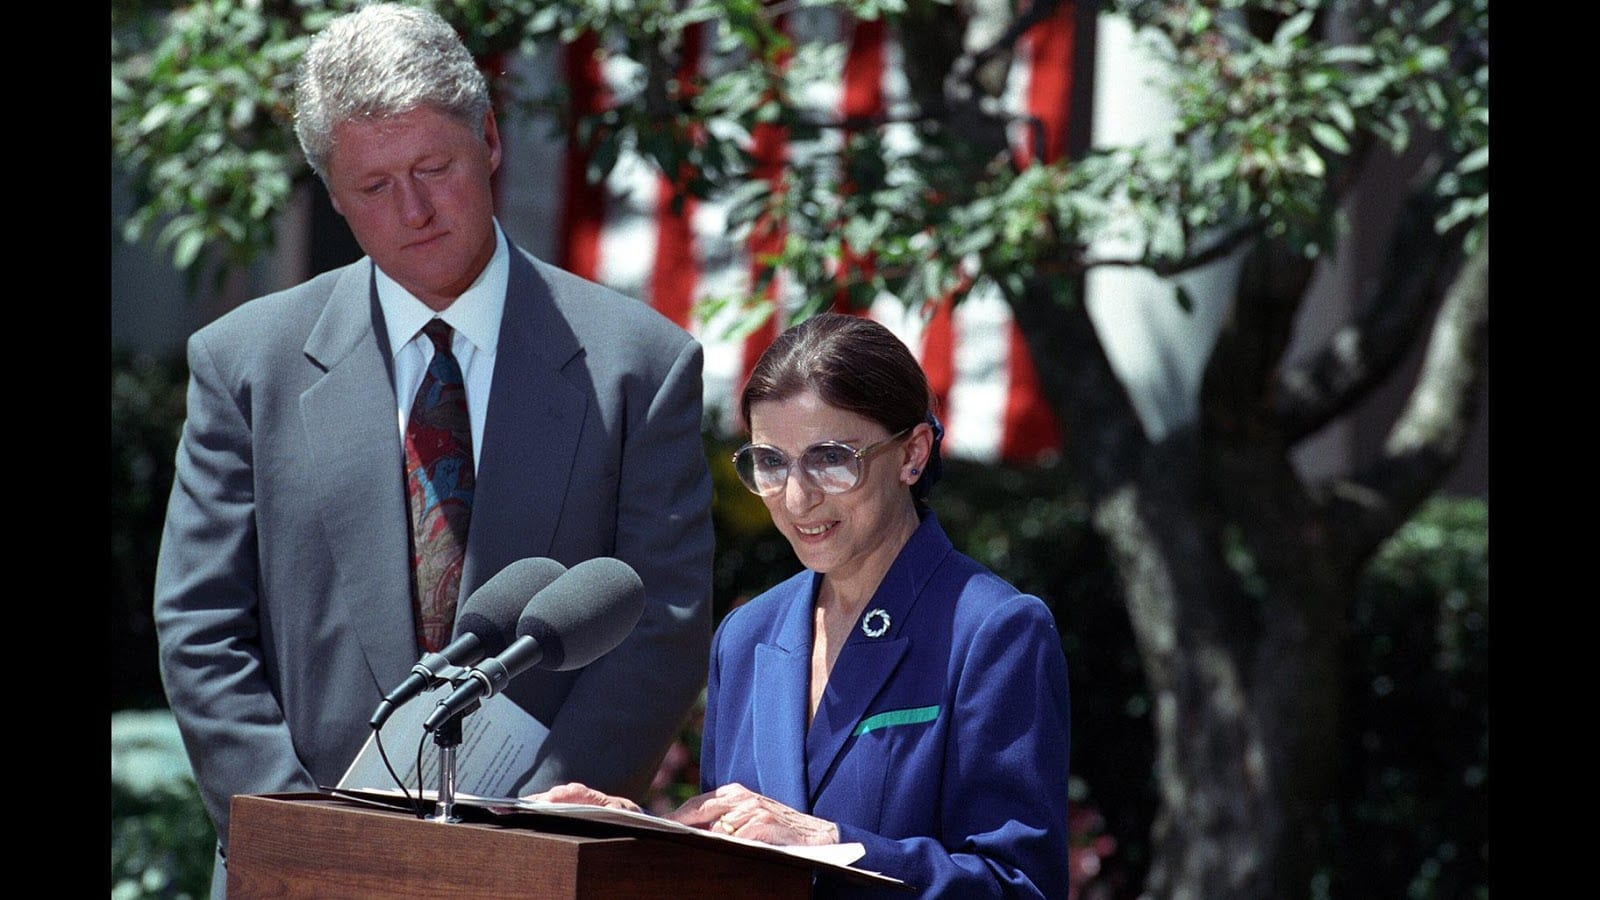 Ruth-Bader-Ginsburg-impact-on-the-environment-bill-Clinton